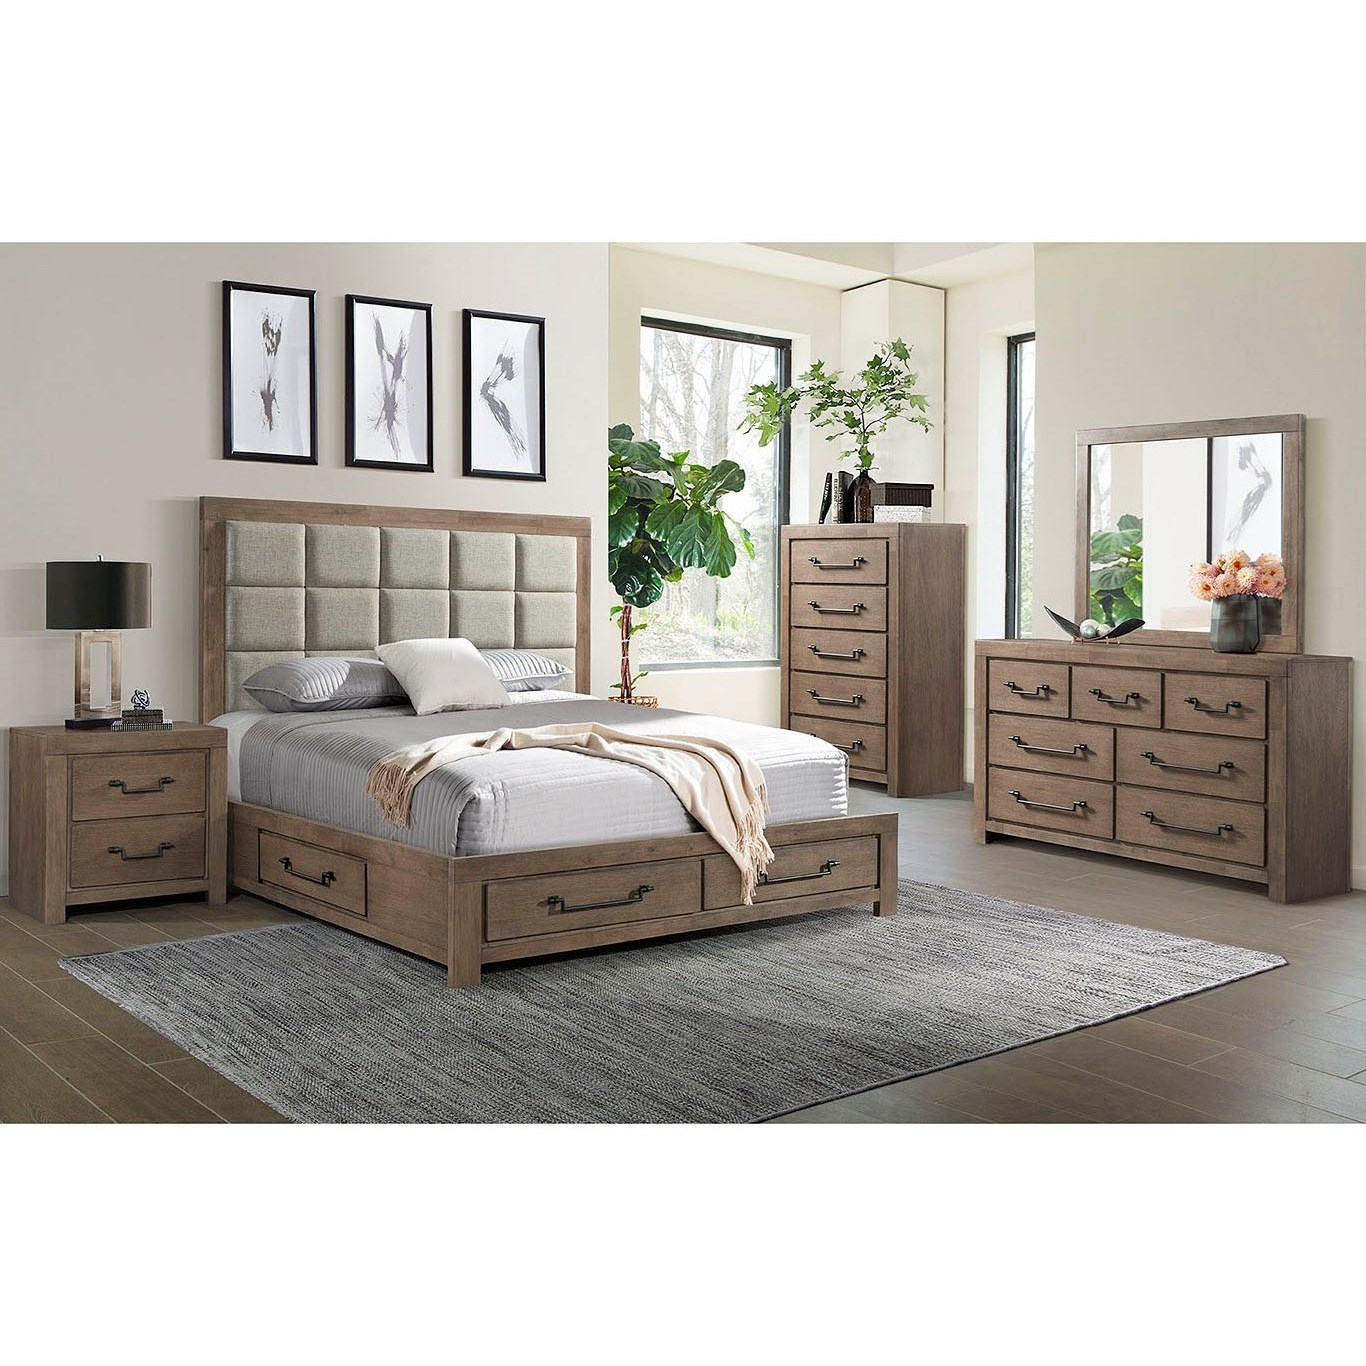 Urban Swag King Bedroom Group by Lane at Powell's Furniture and Mattress